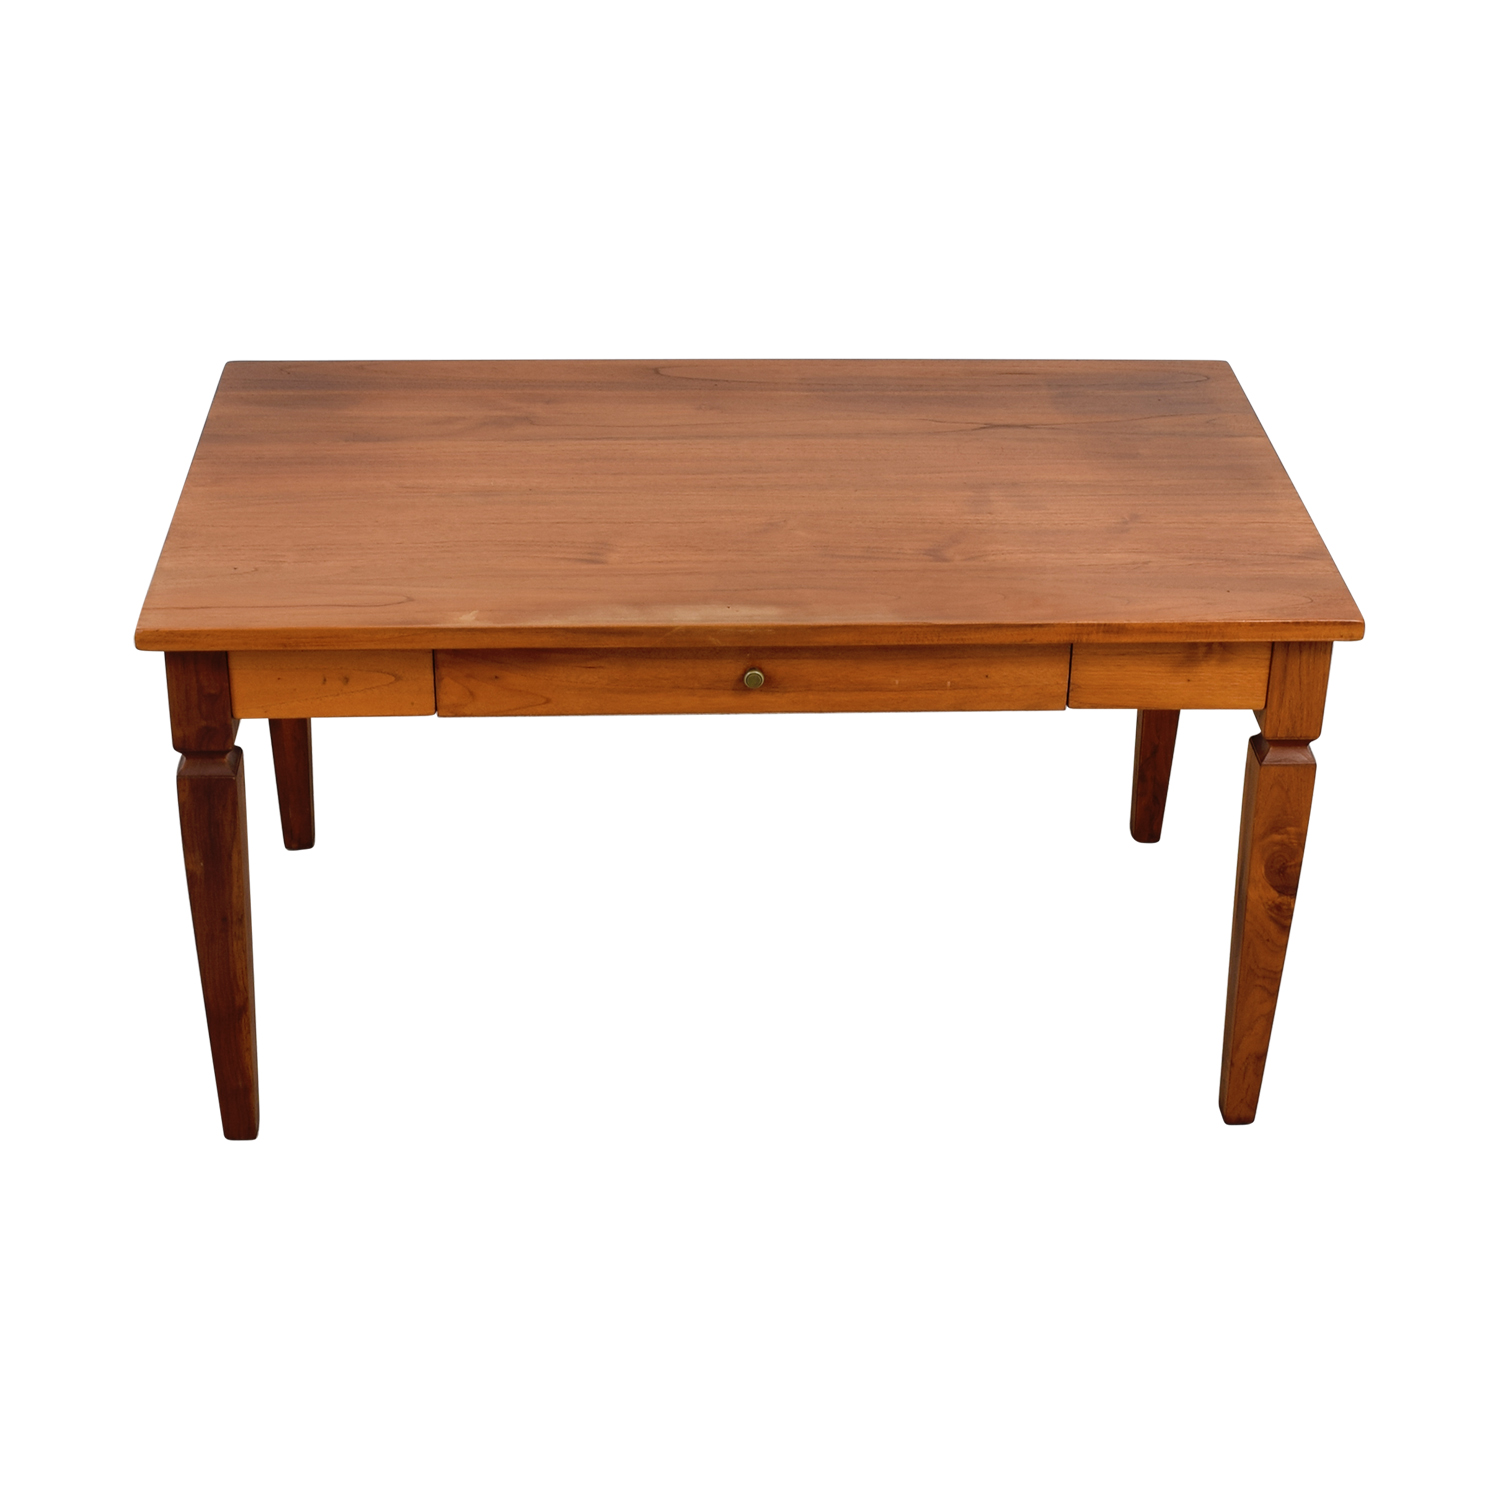 buy Crate & Barrel Desk with Keyboard Pull Out Drawer Crate & Barrel